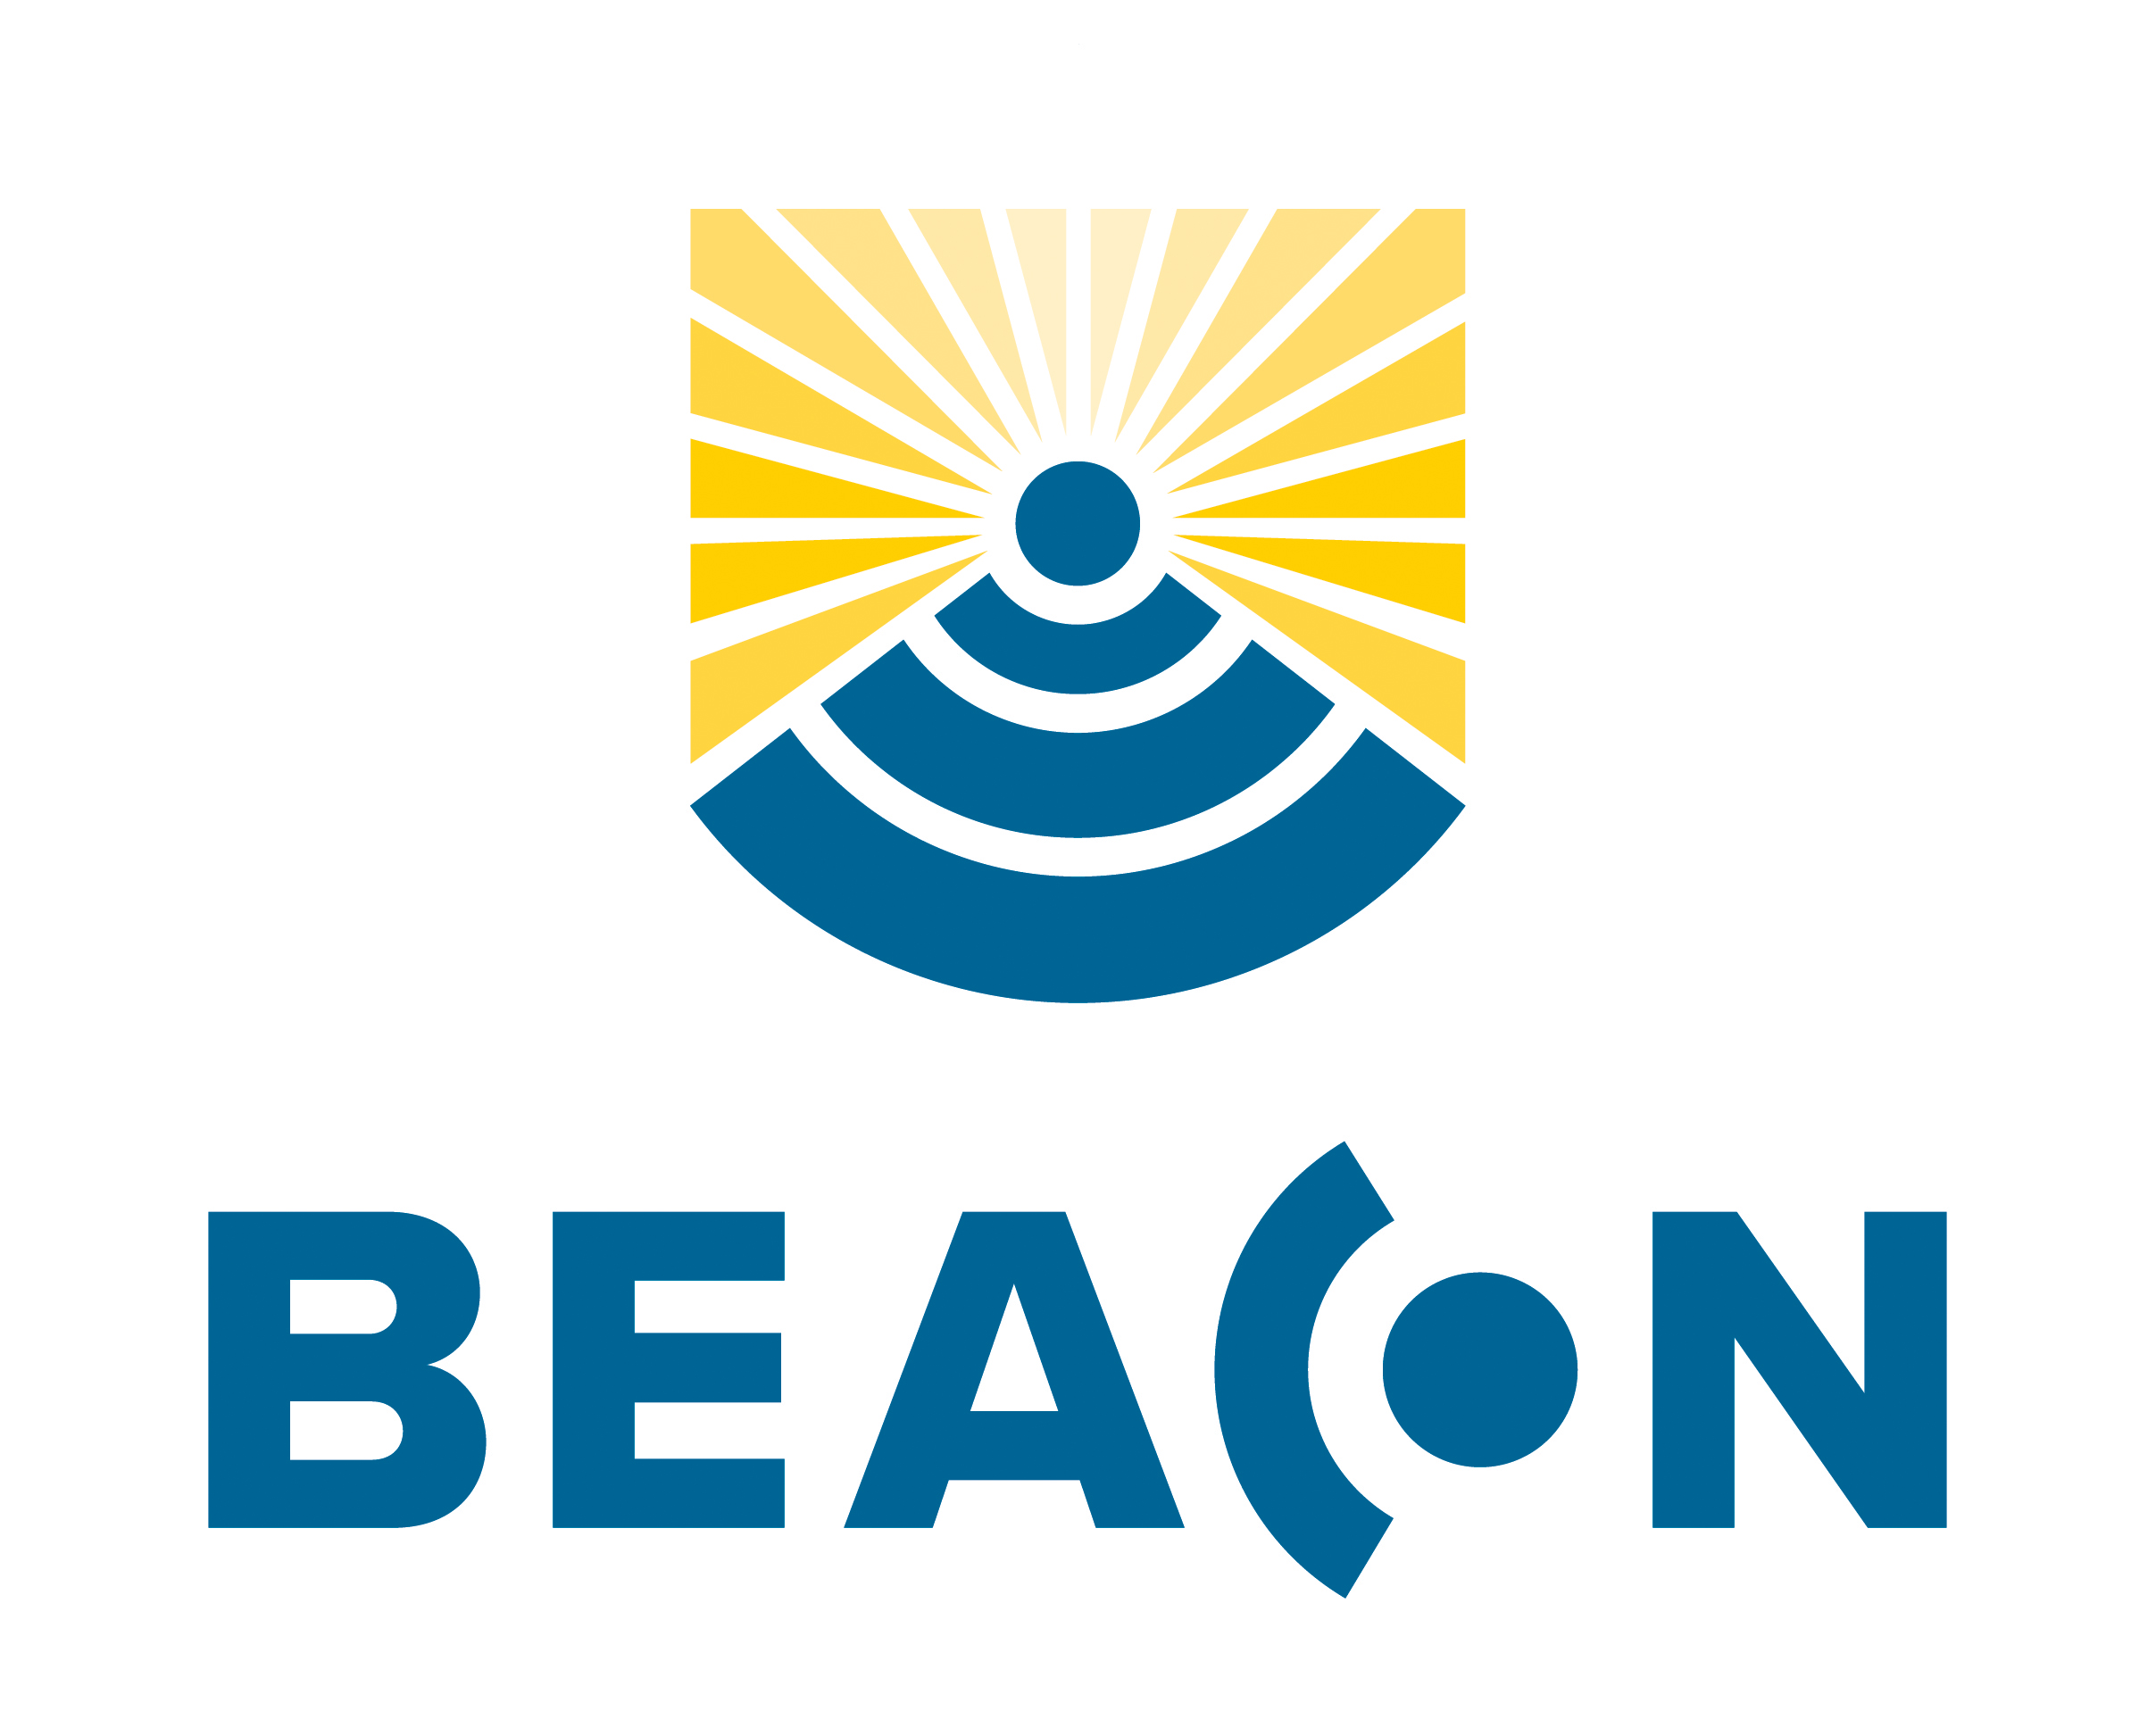 Beacon Electronic image